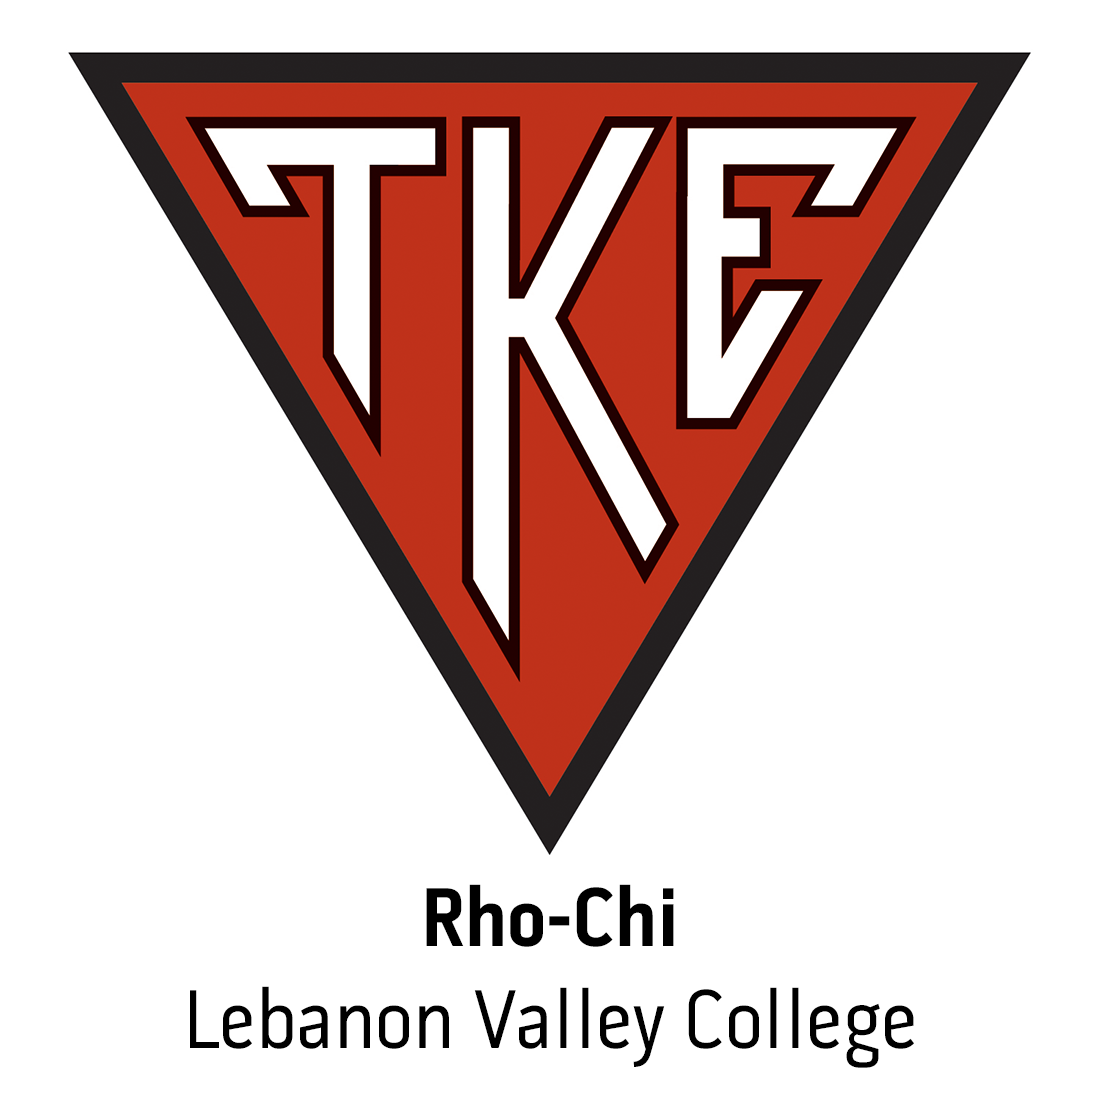 Rho-Chi Chapter at Lebanon Valley College